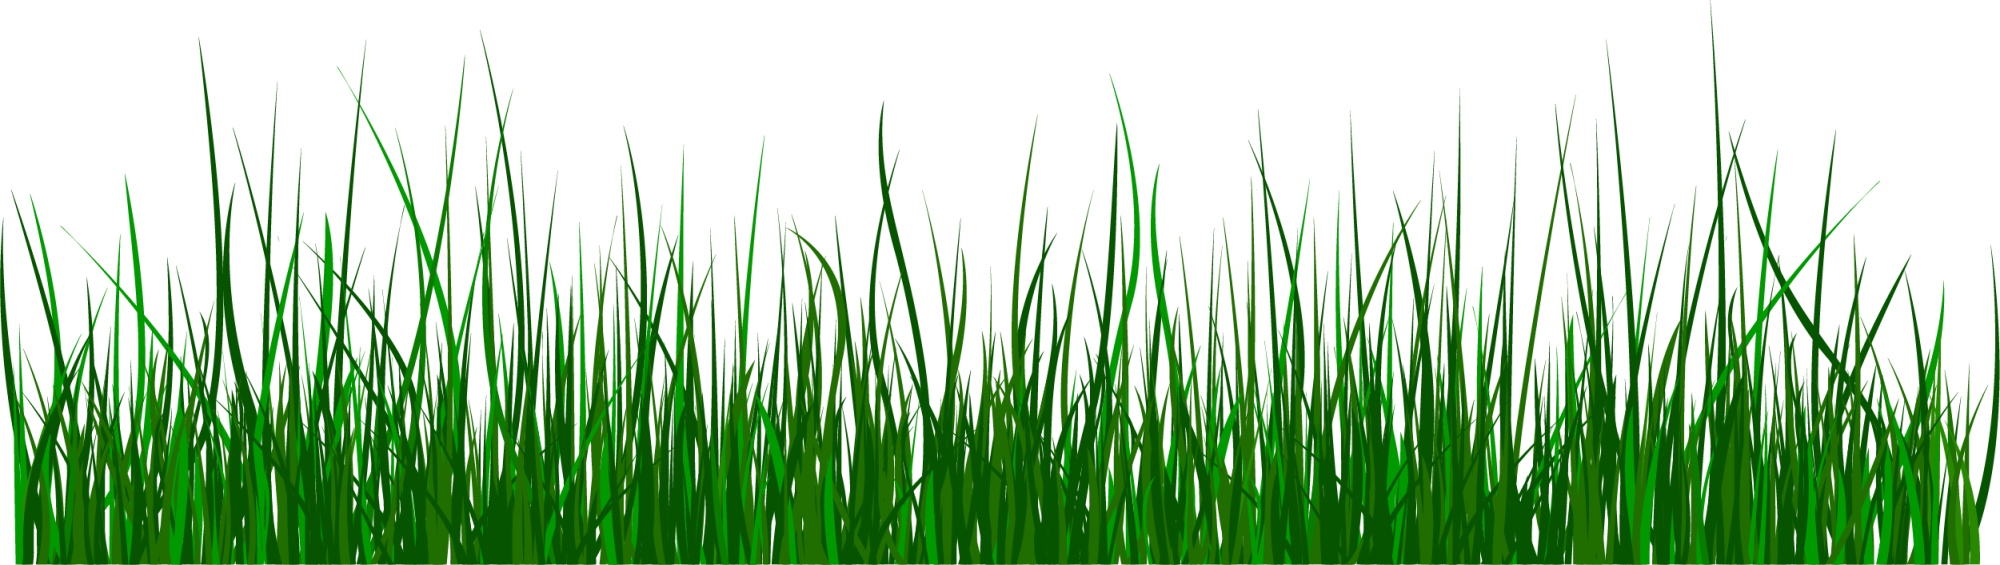 Clipart grass simple. Green clip art fresh